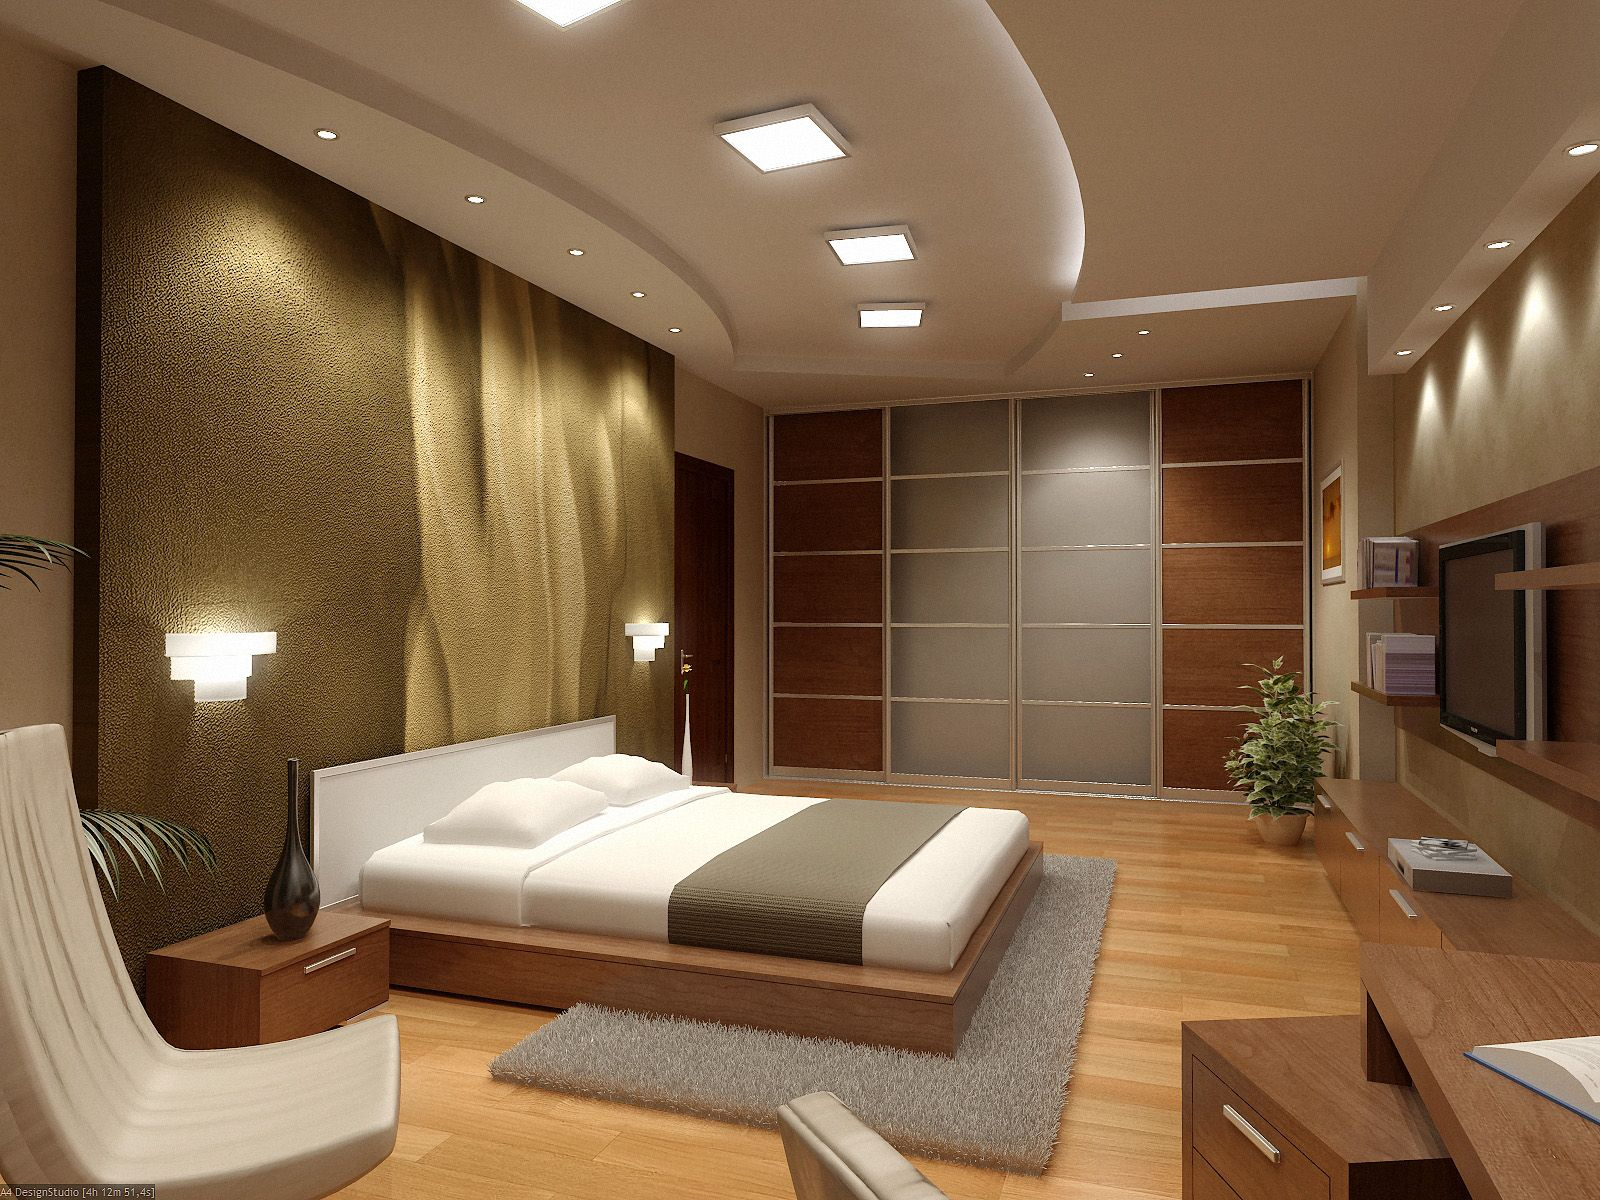 Top Modern Bedroom Interior Design Ideas 1600 x 1200 · 367 kB · jpeg